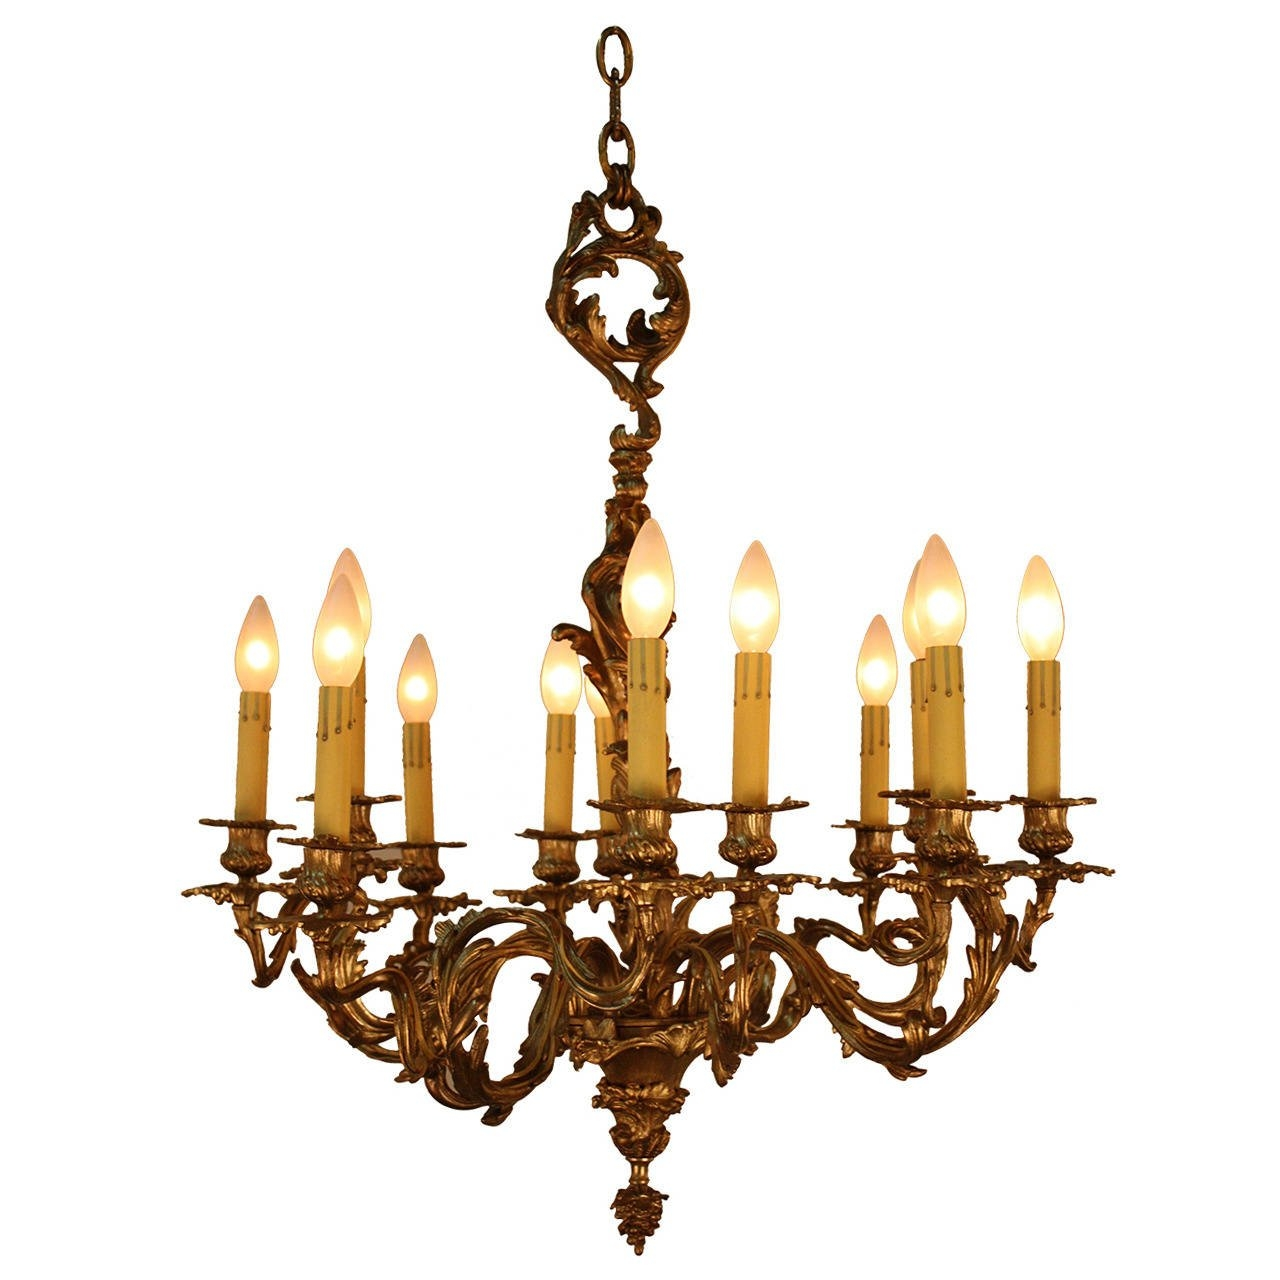 19th Century French Bronze Chandelier At 1stdibs Inside French Bronze Chandelier (Image 1 of 15)